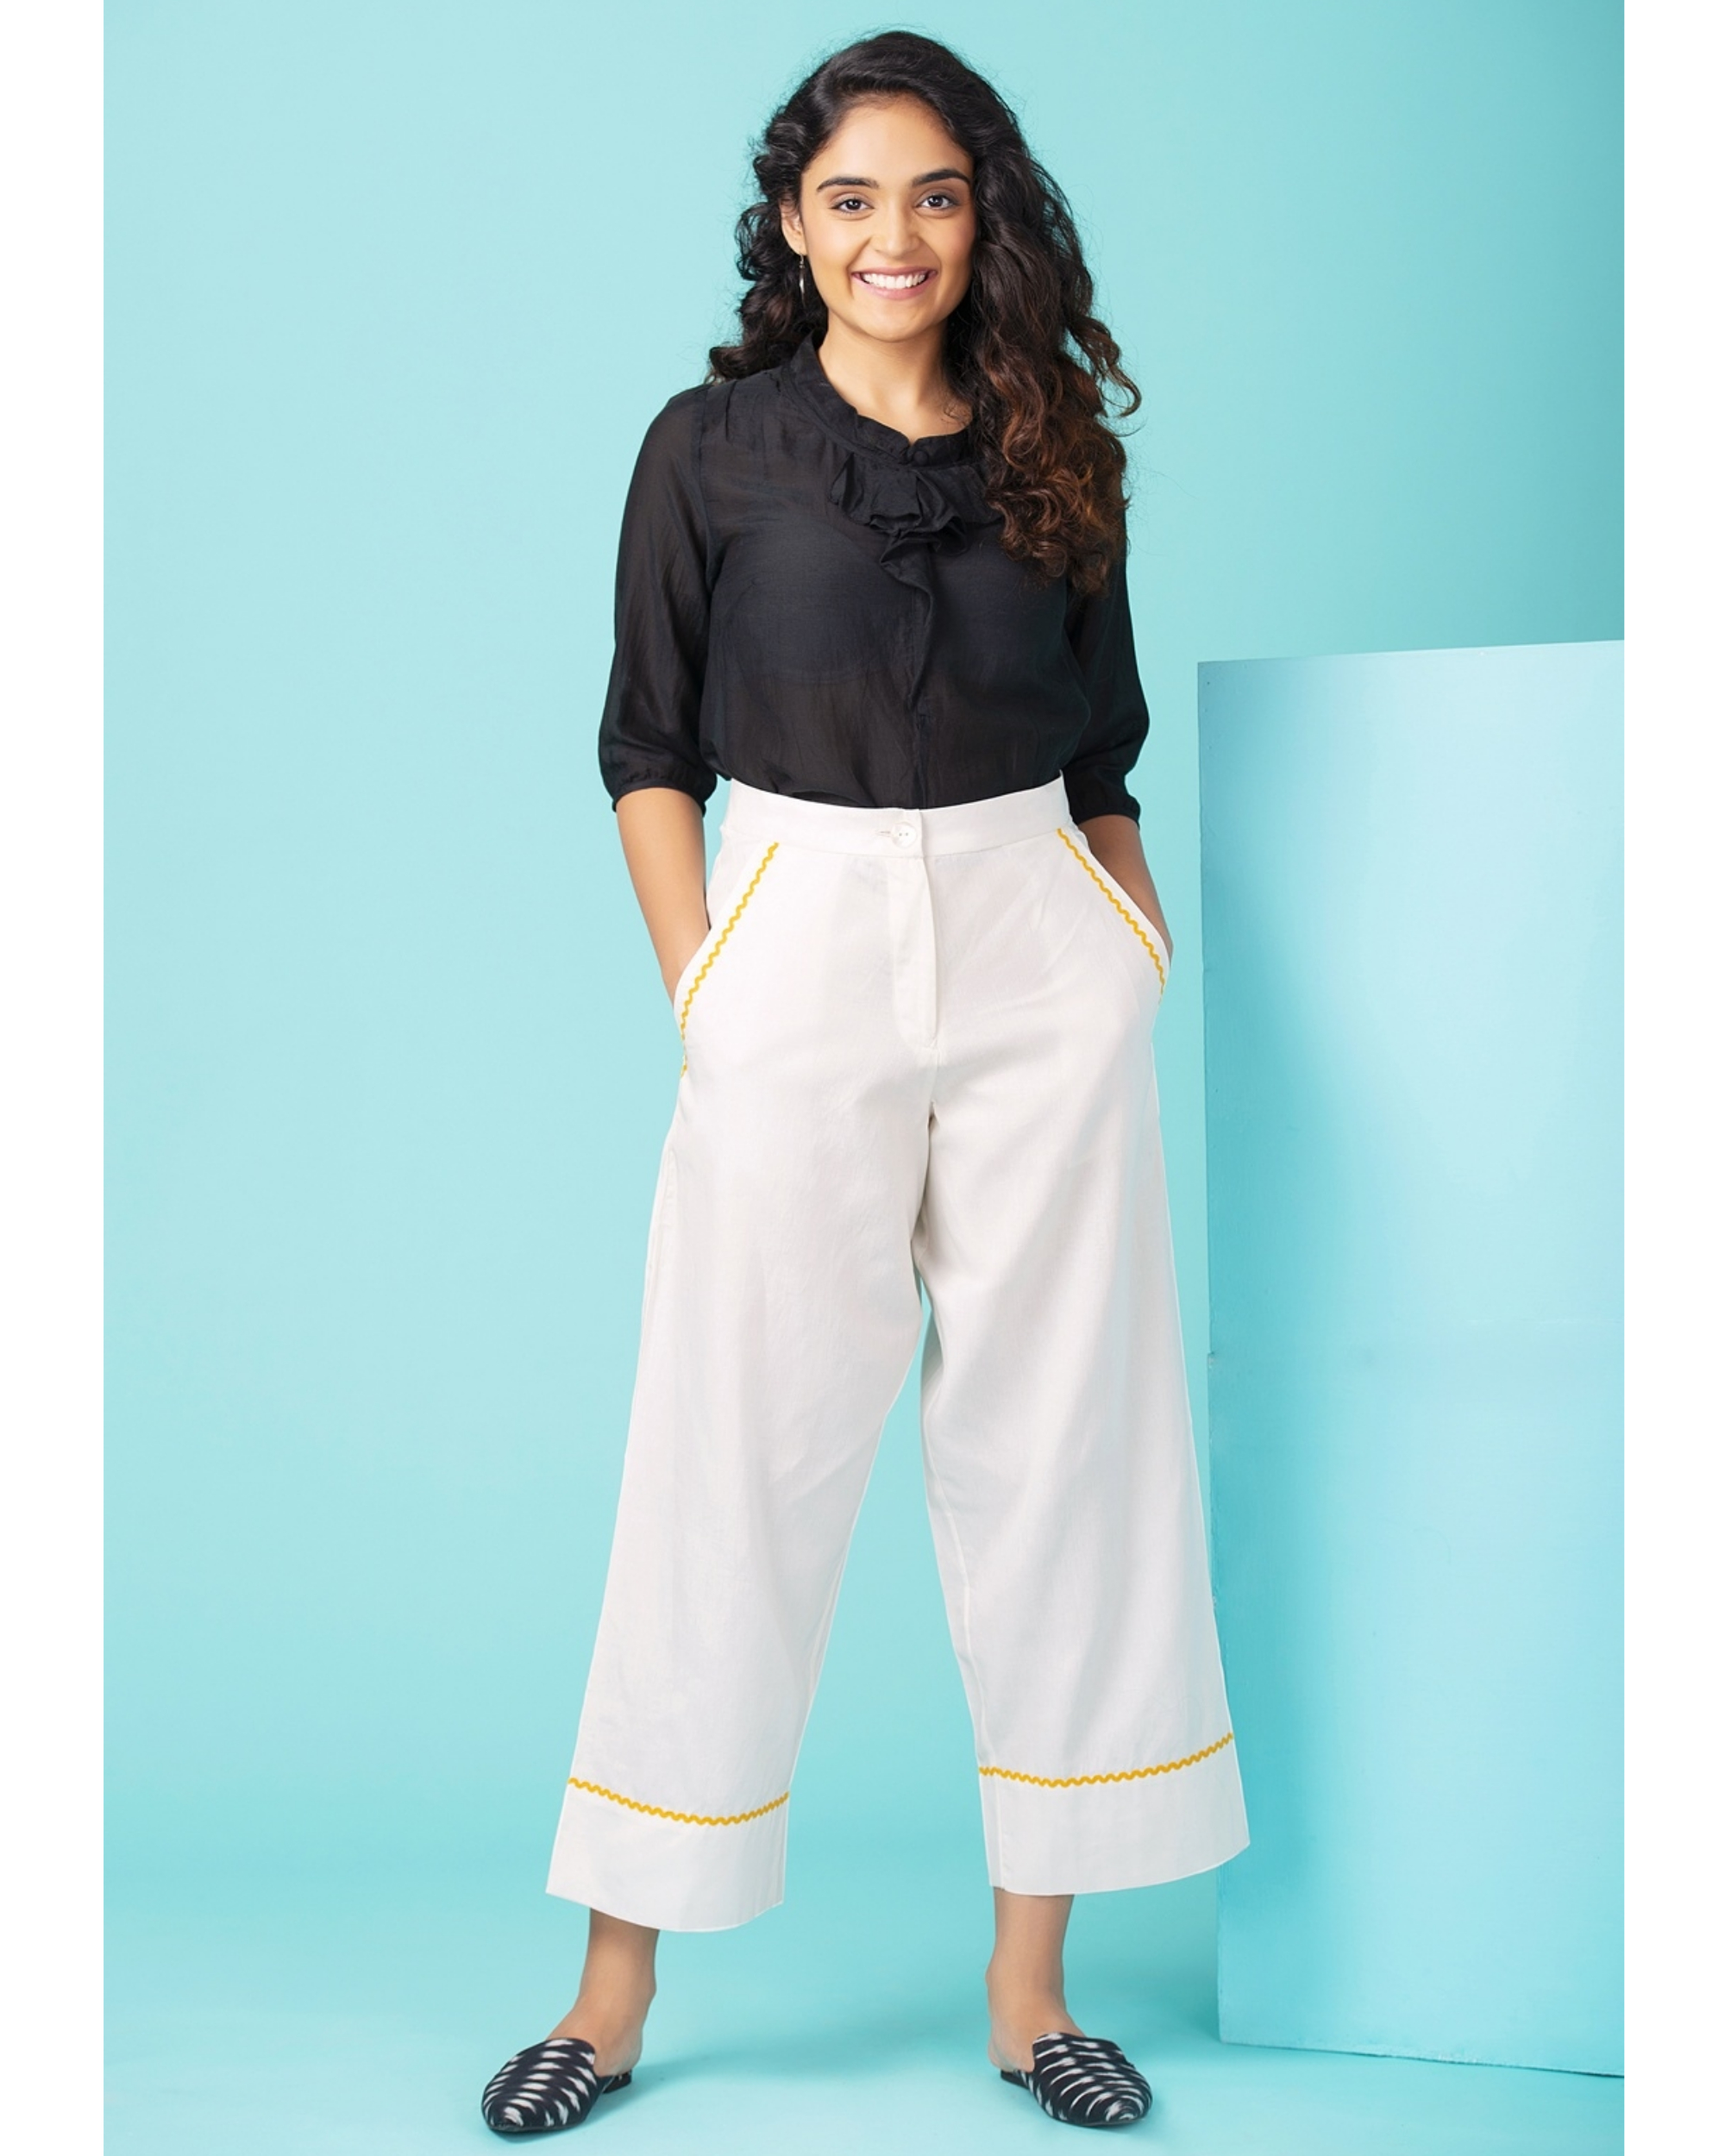 White contrast trim pants